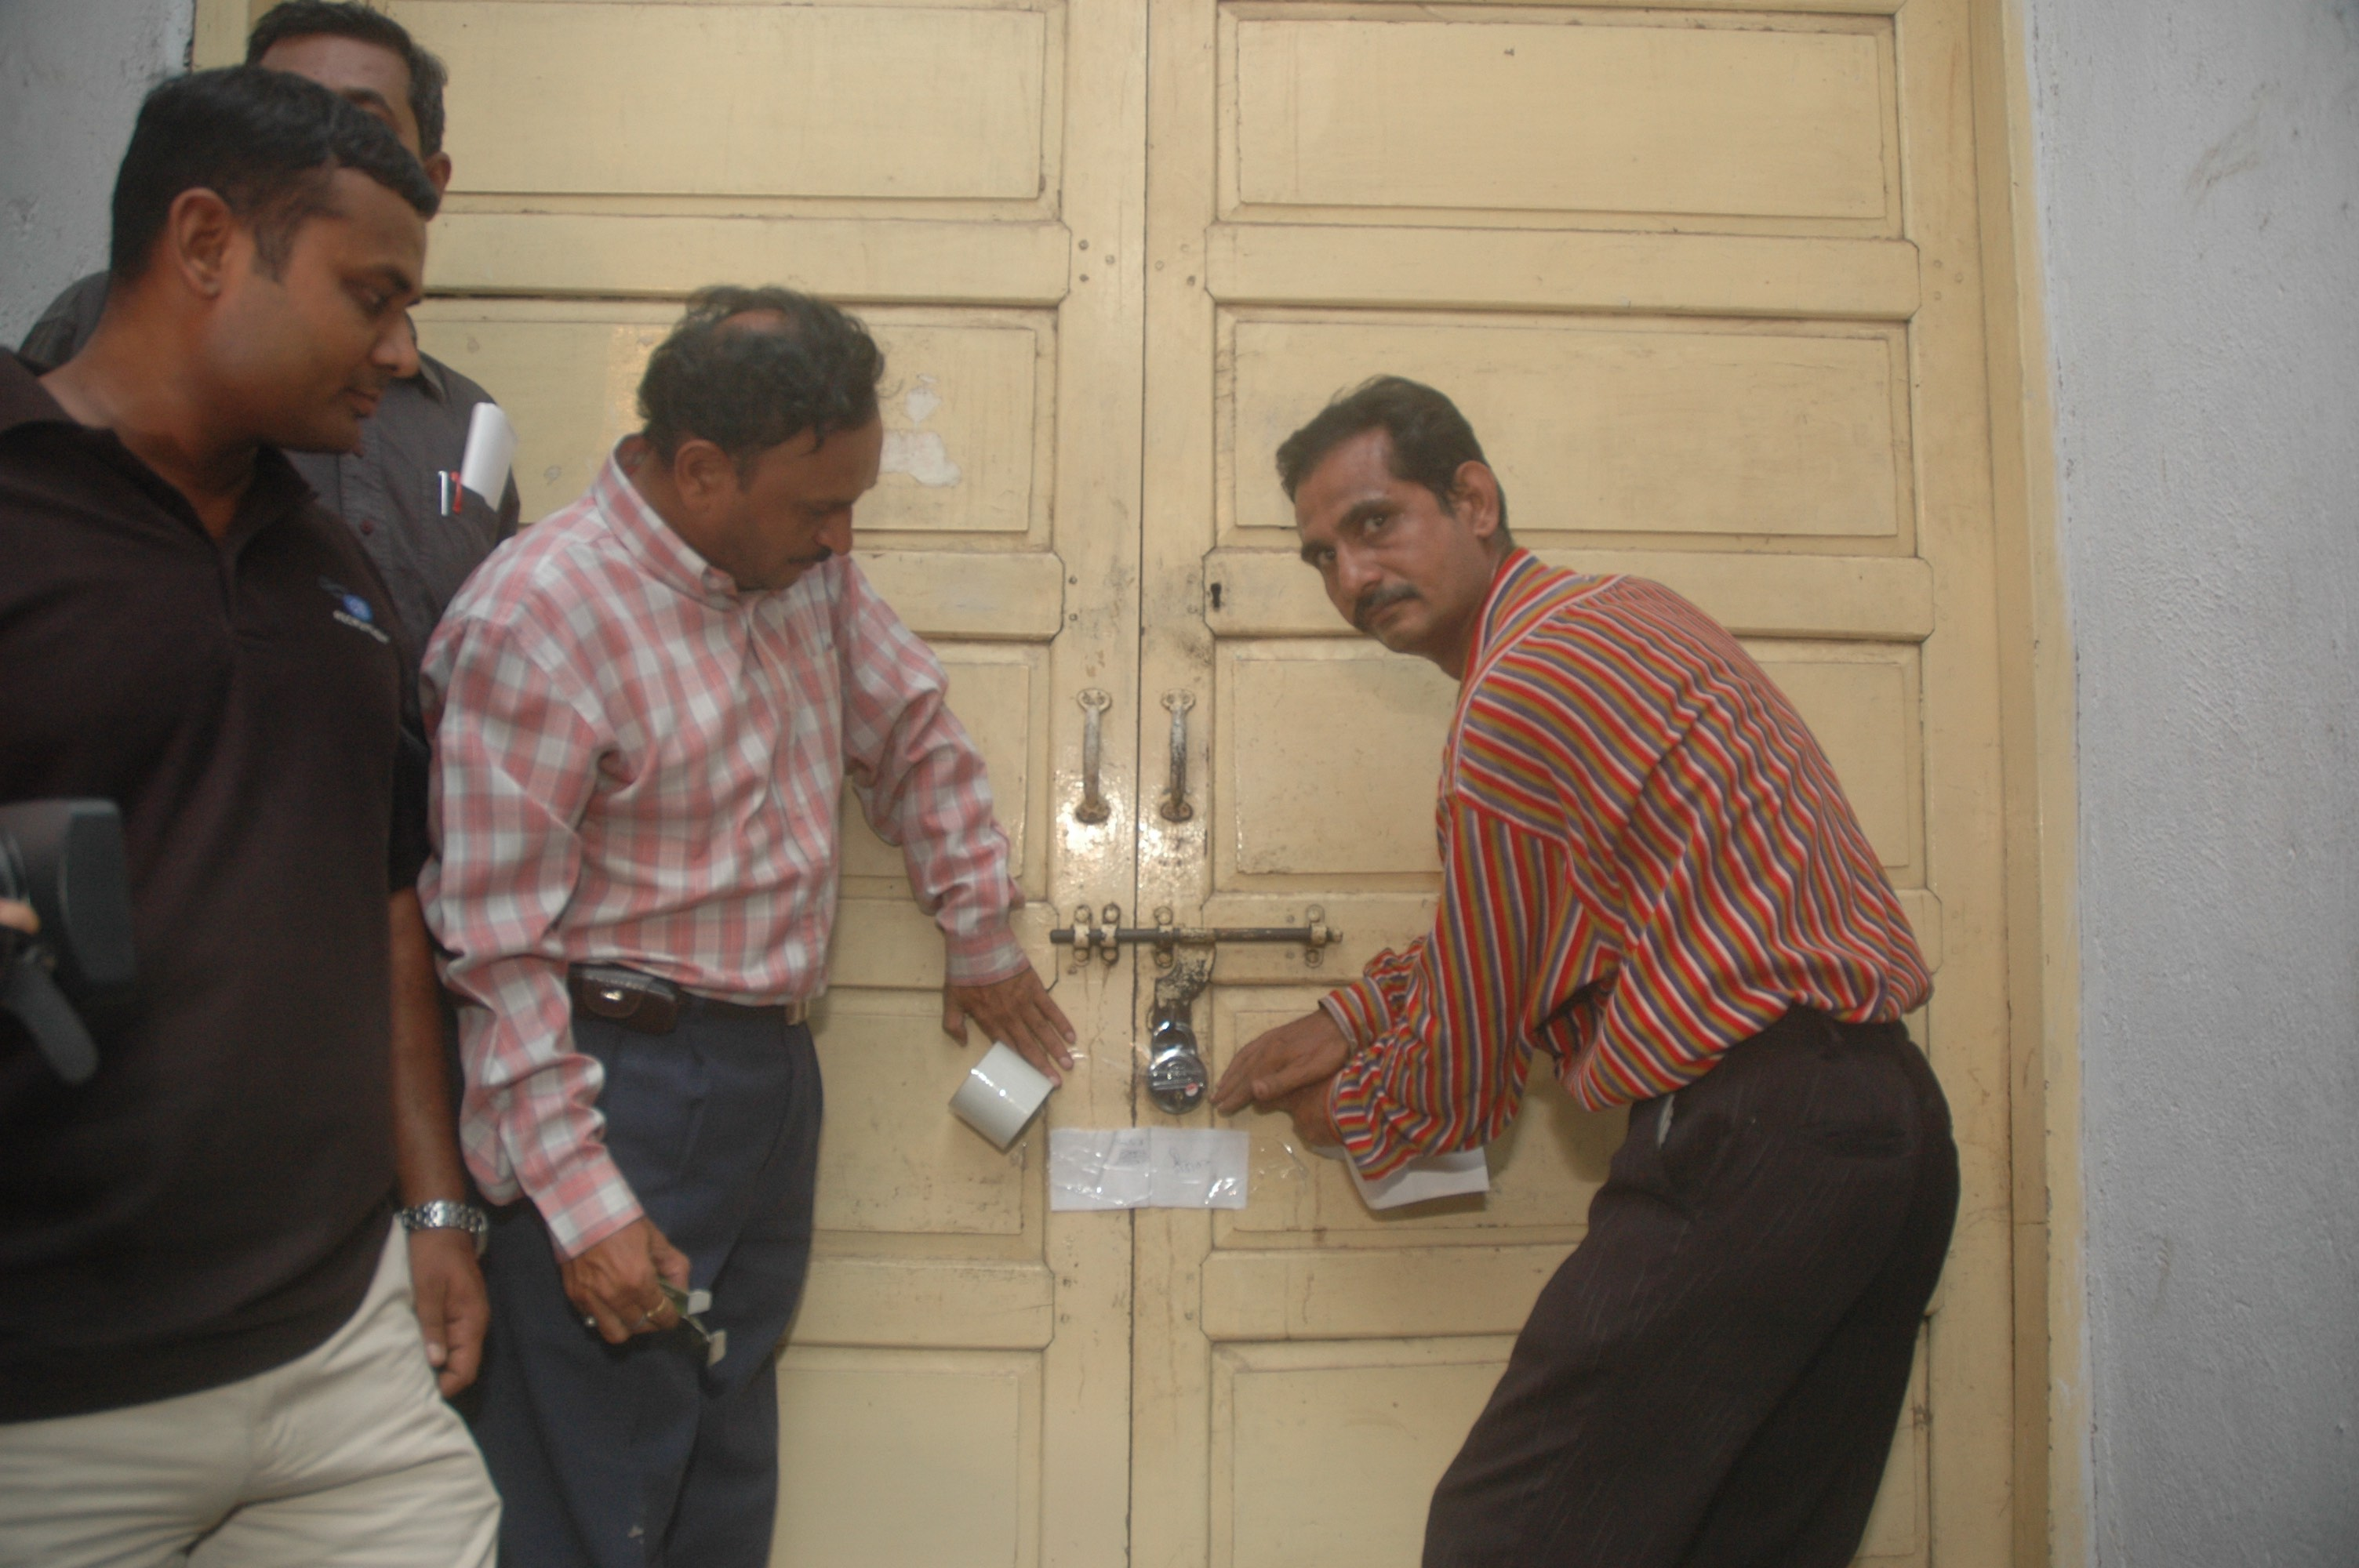 Government officials sealing the room displaying Chandramohan's art at the Faculty of Fine Arts, Vadodara, May 11, 2007. Image courtesy: Students of the Faculty of Fine Arts. Source: Akansha Rastogi and B.V. Suresh